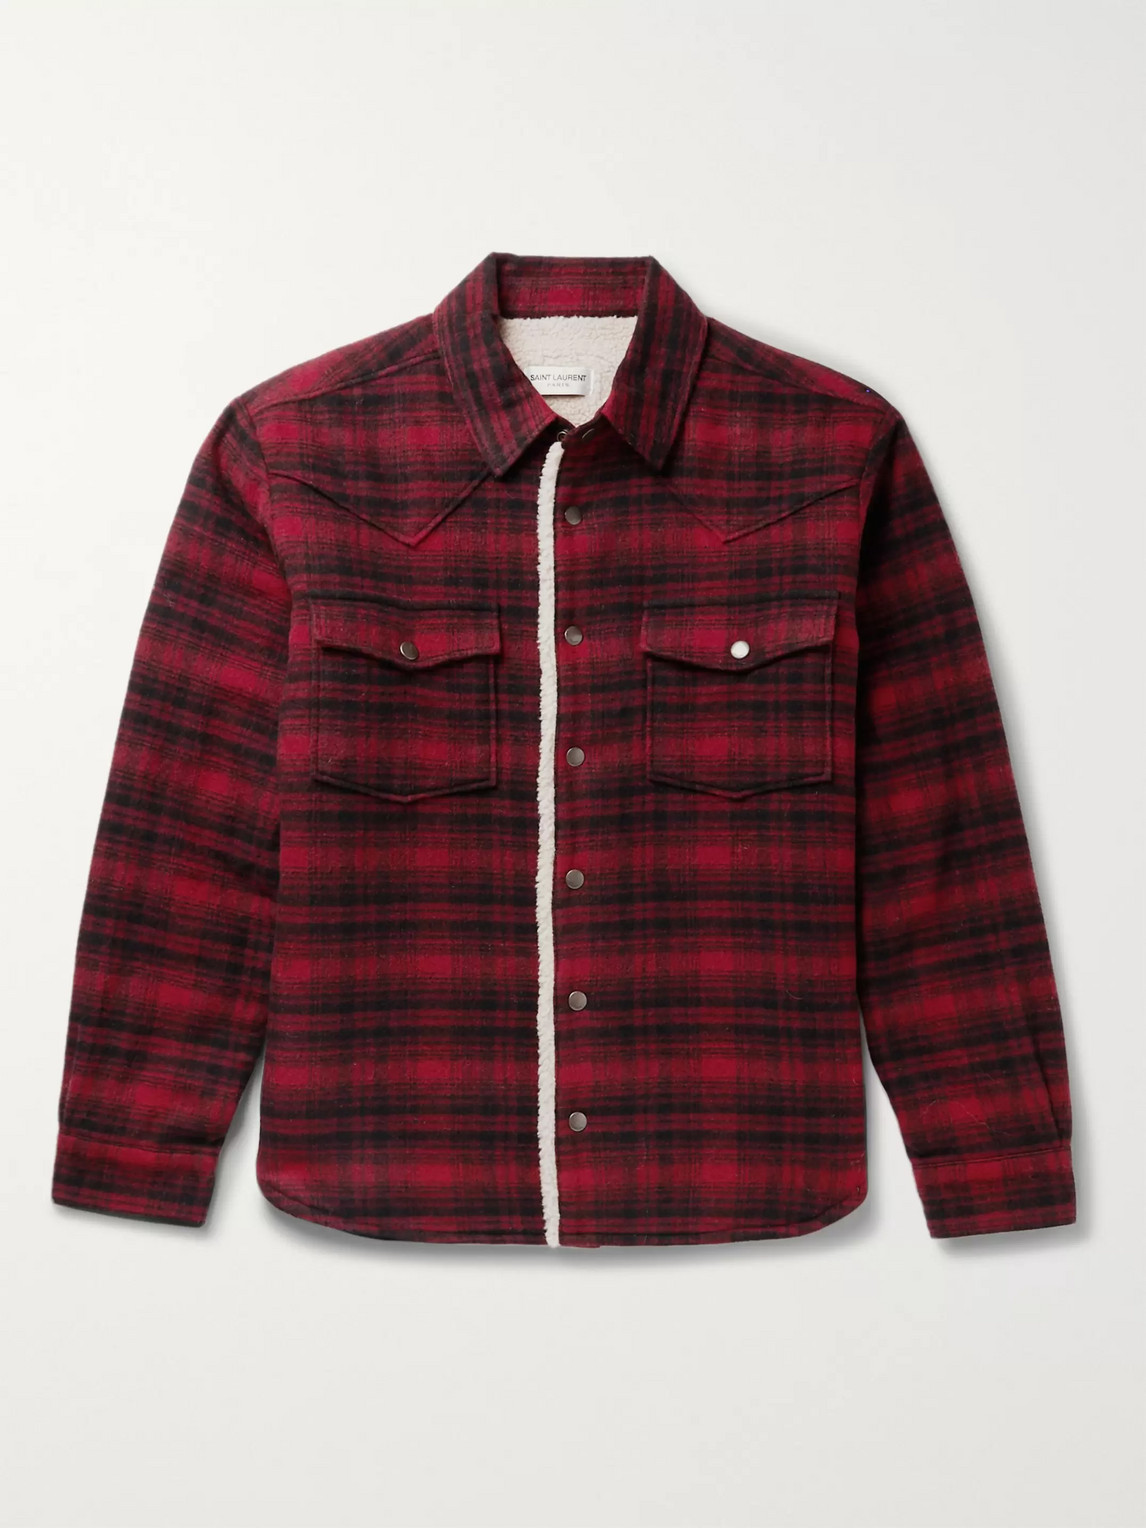 saint laurent - checked faux shearling-lined wool-blend jacket - men - red